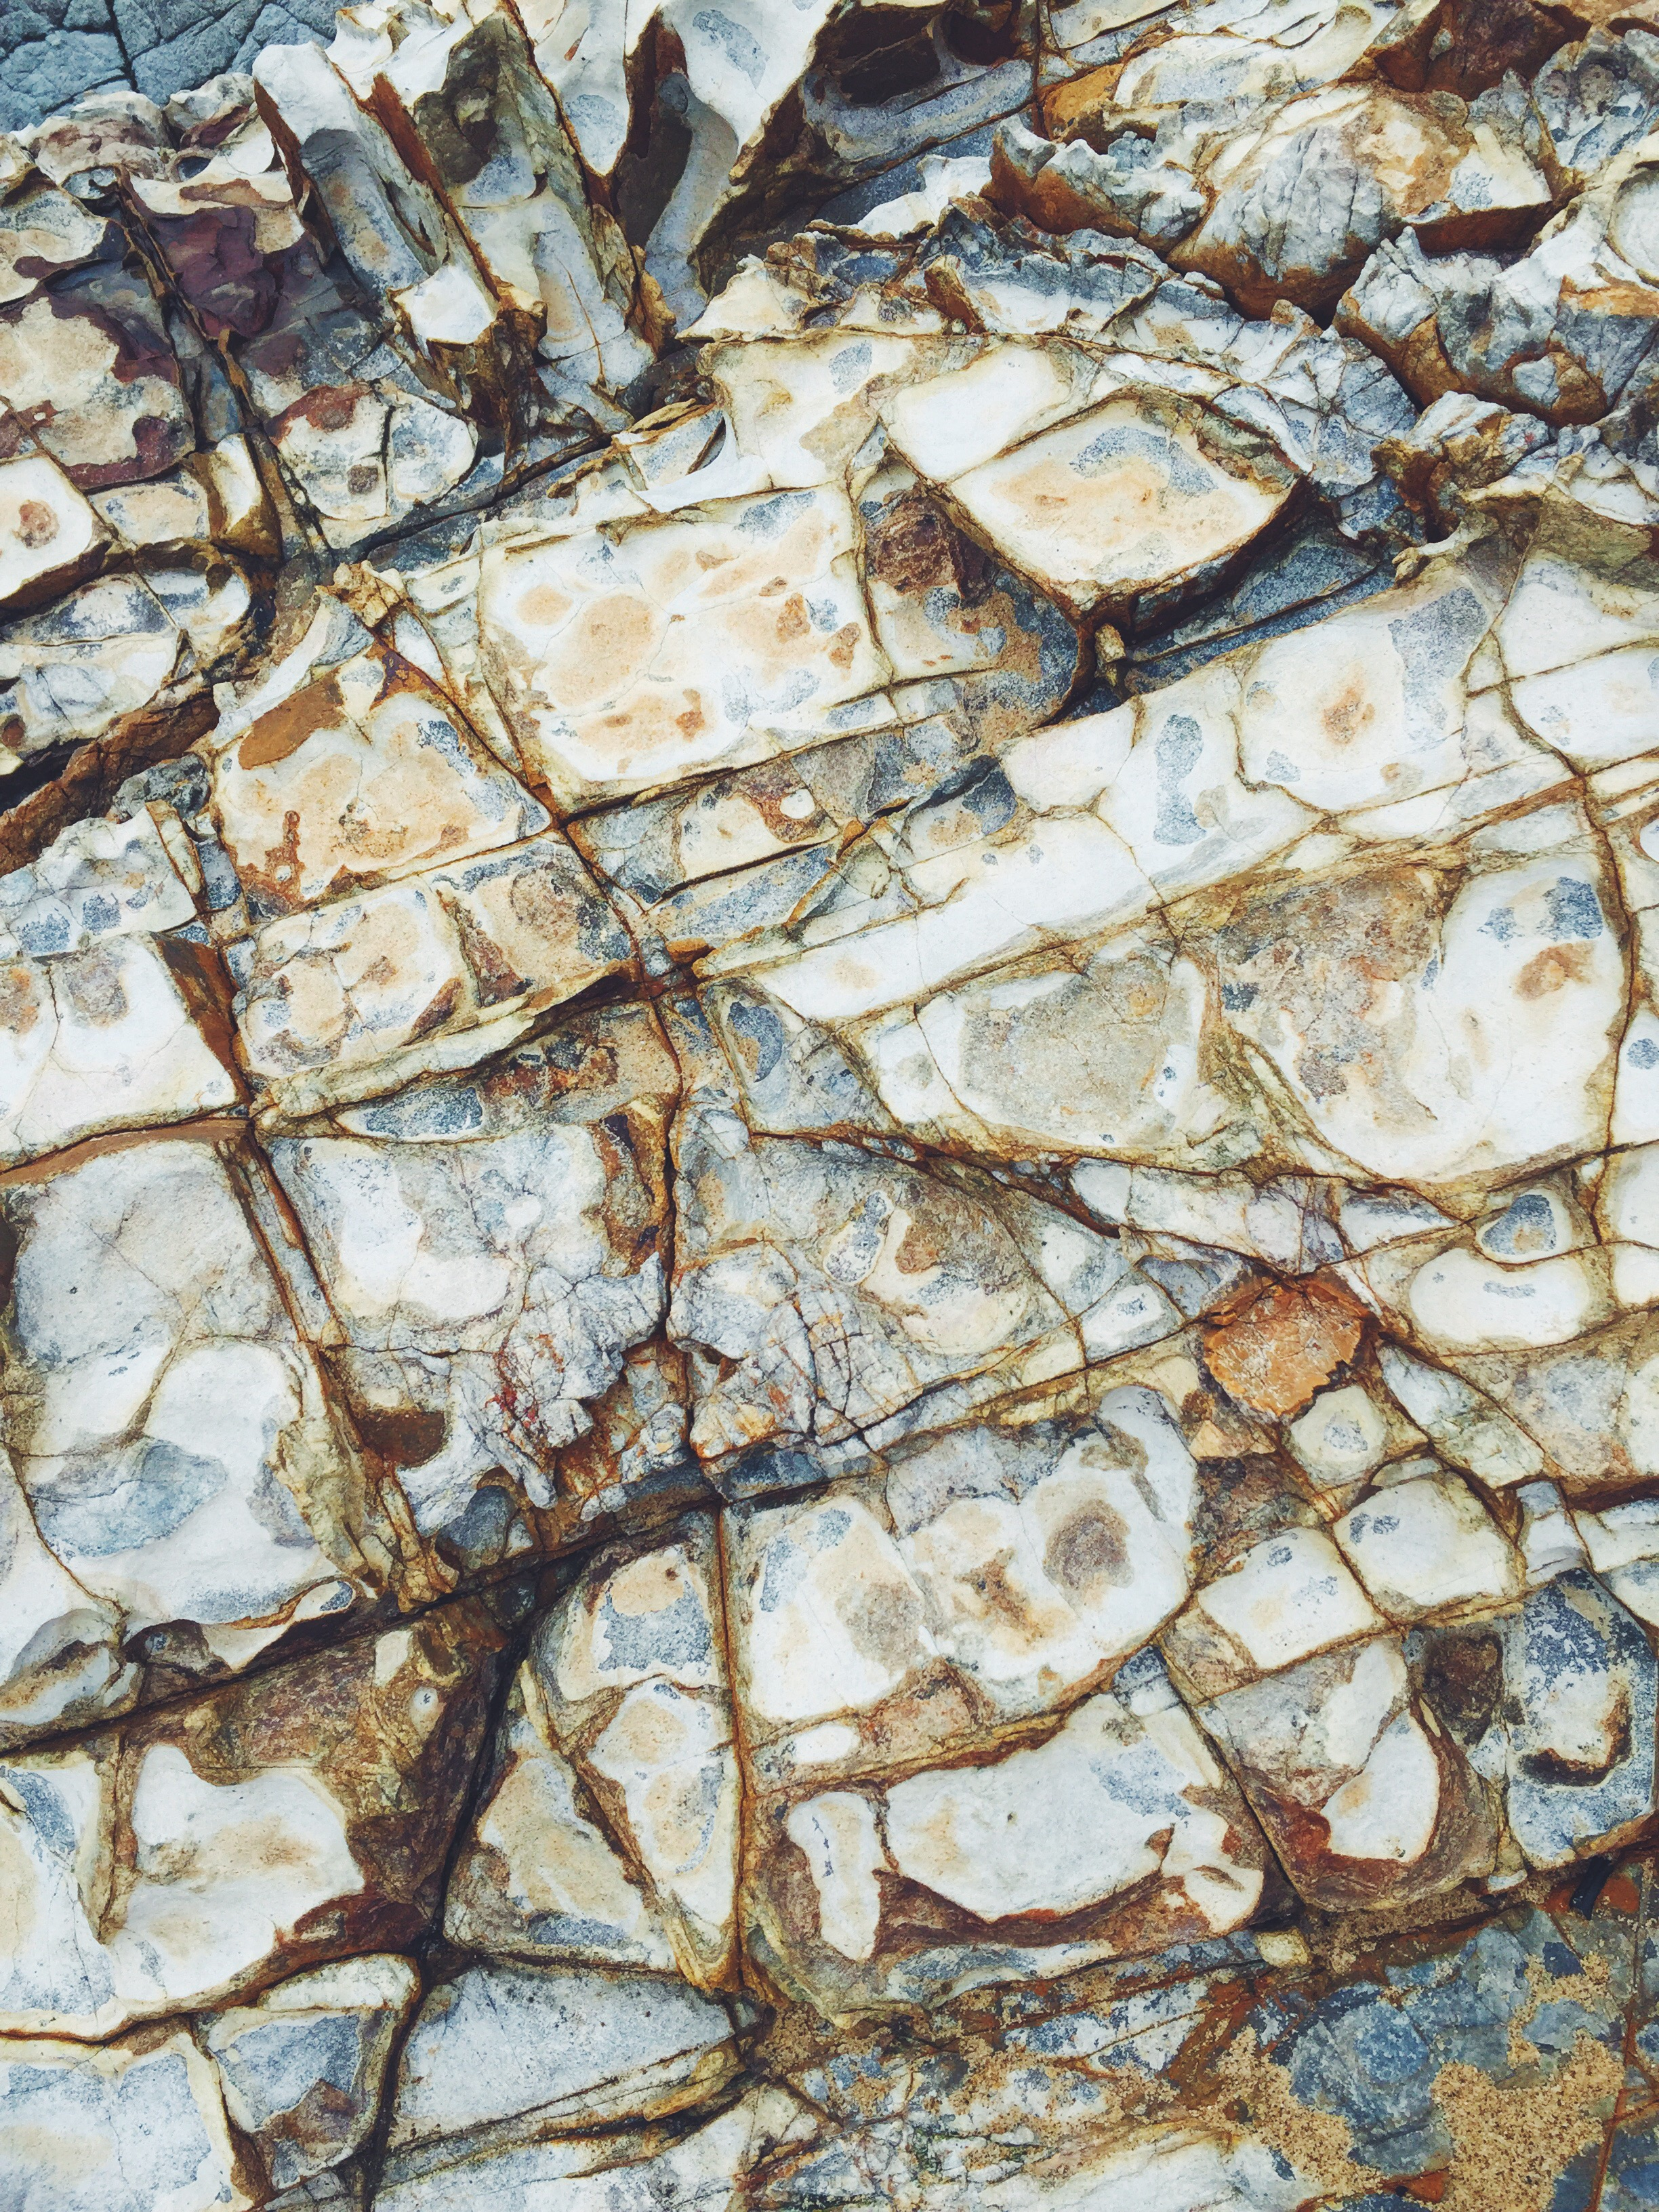 Rock formations on Crescent Bay beach